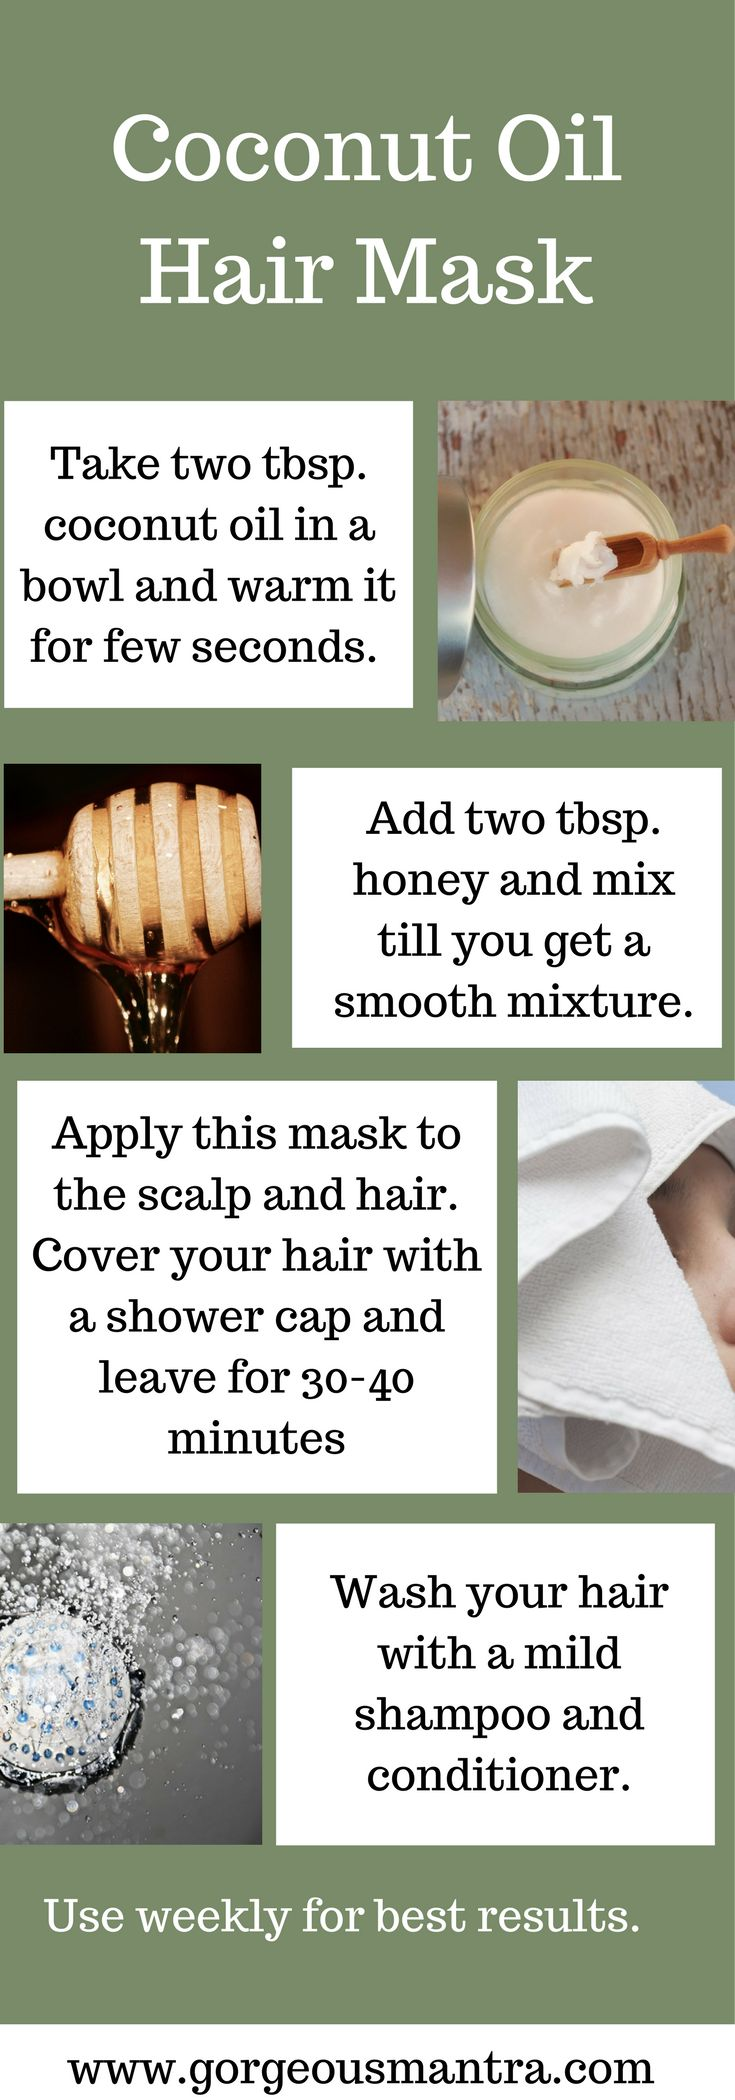 DIY coconut oil hair masks. Coconut oil nourishes hair and improves hair growth. It can be used to make simple homemade hair masks that are great for your hair.